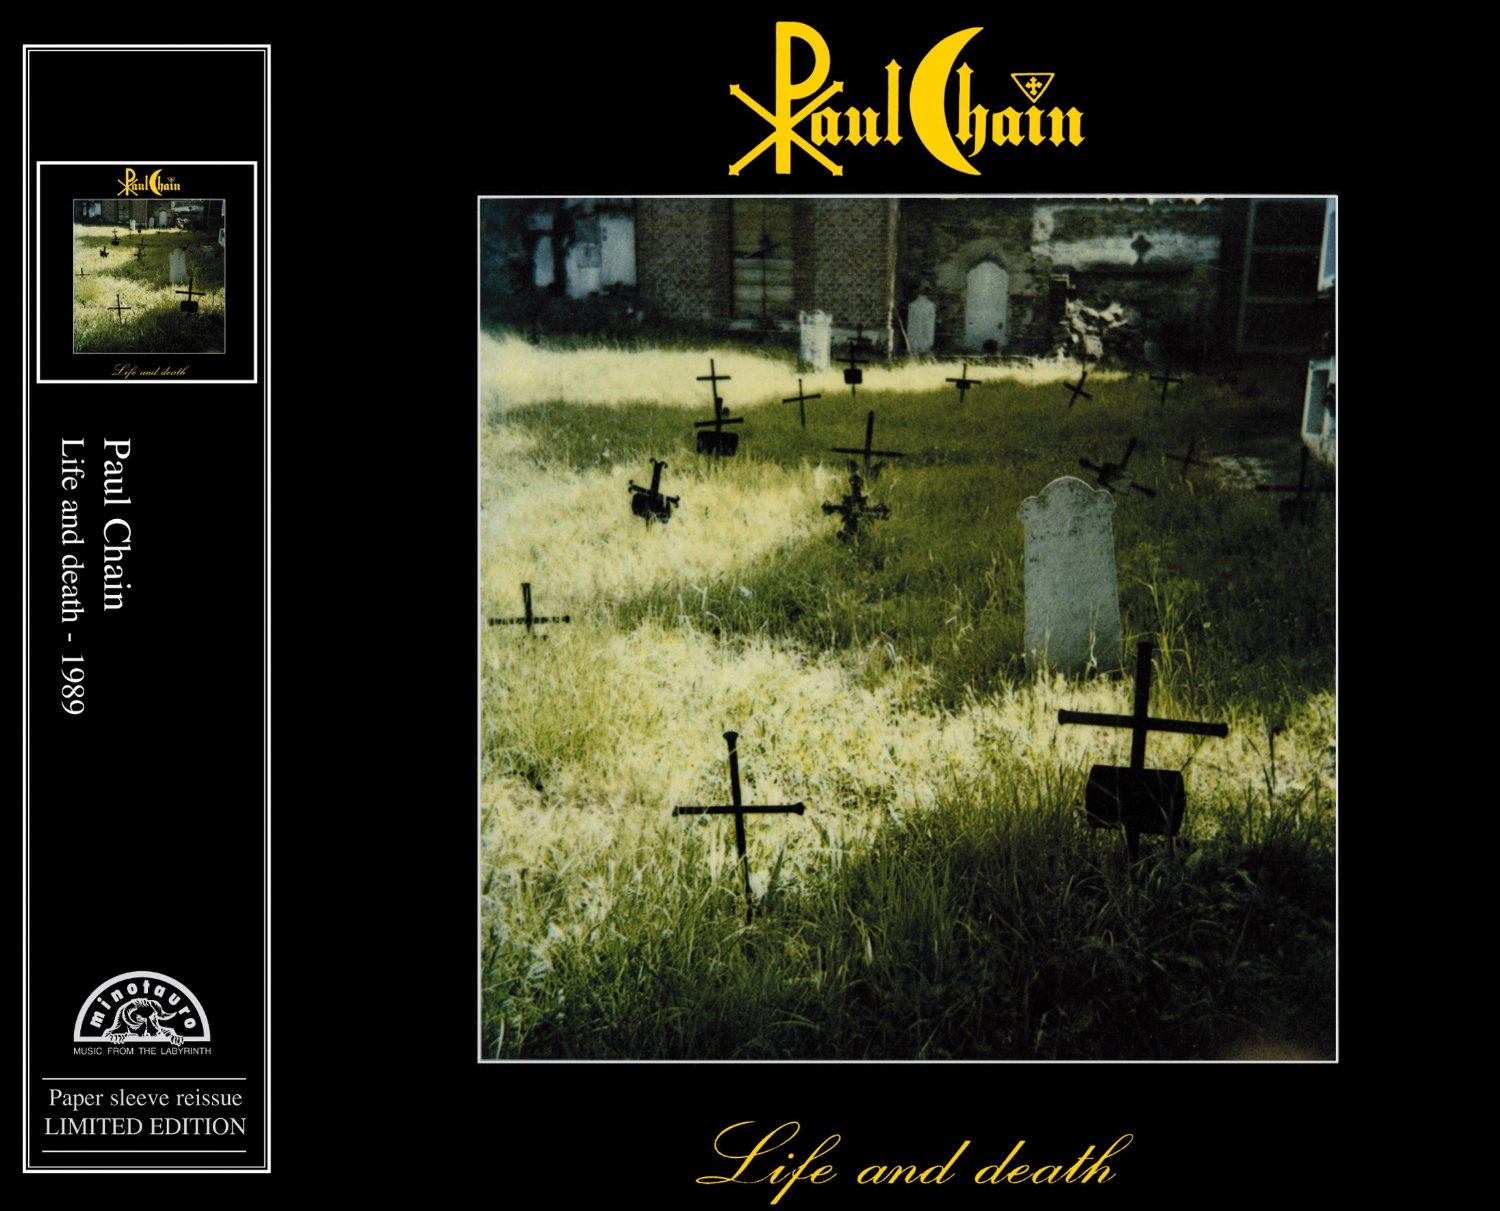 Paul Chain - Life and Death (Papersleeve)